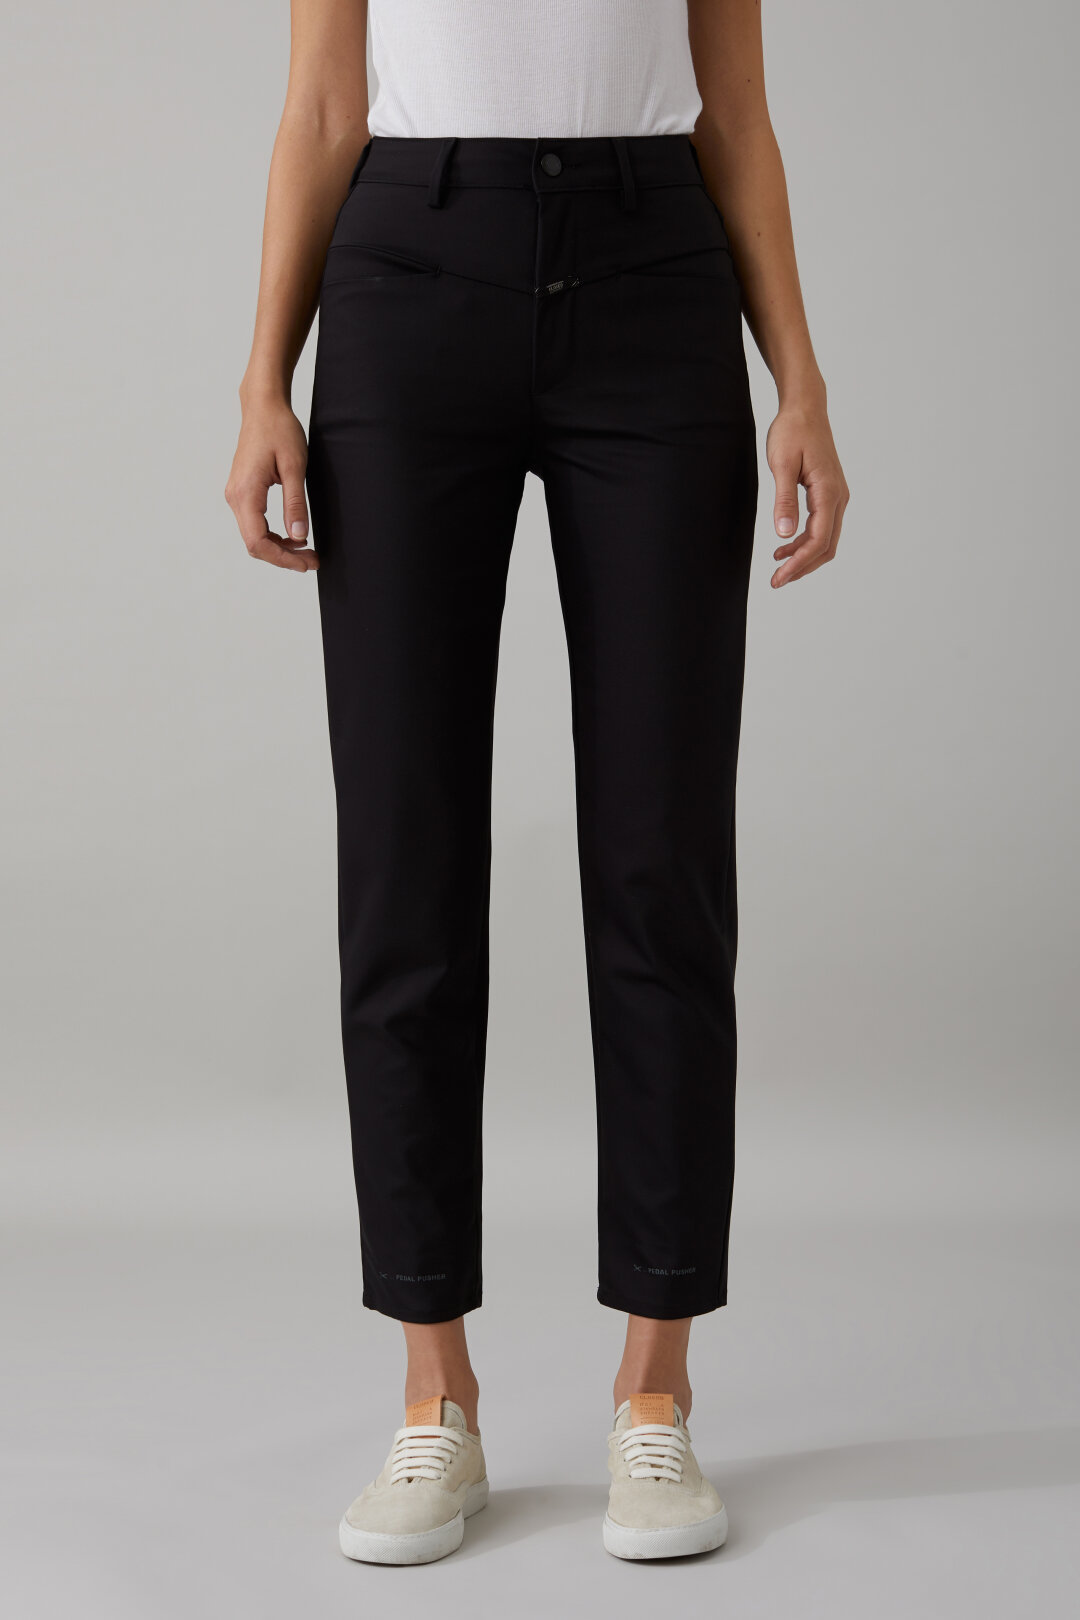 Pantalon Pedal Pusher en coton stretch